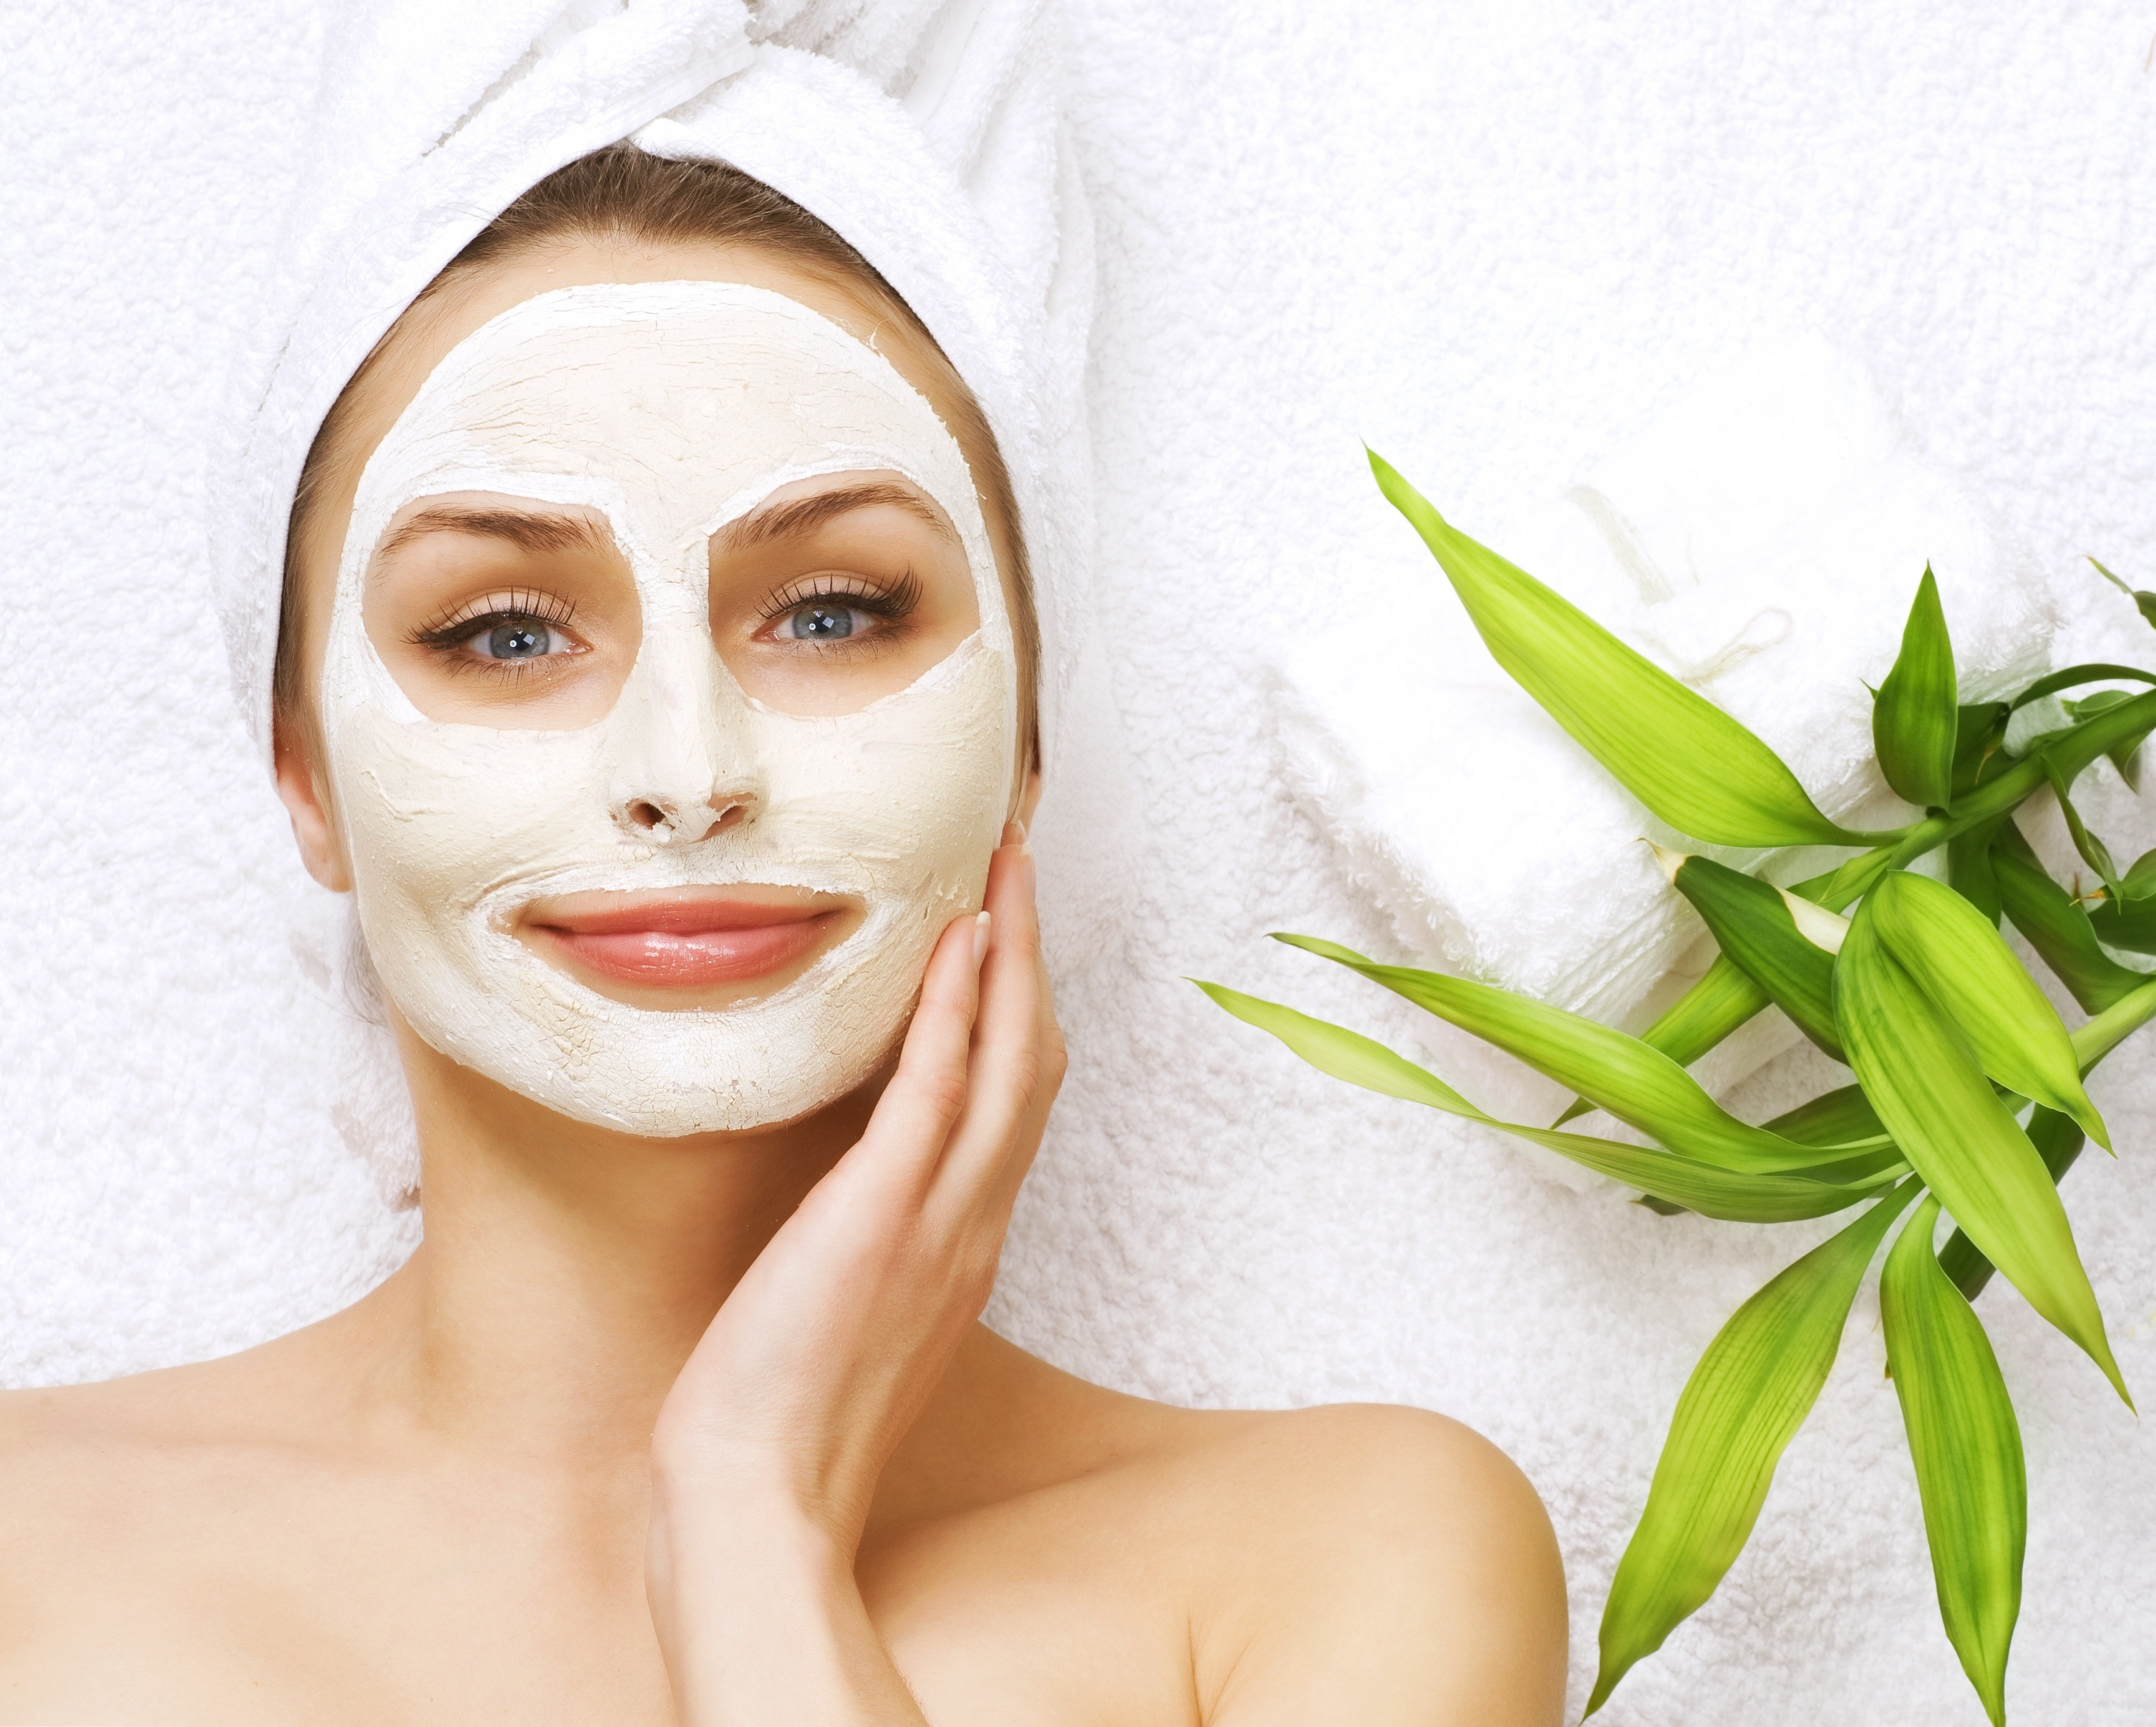 Best ideas about DIY Masks For Dry Skin . Save or Pin 3 DIY Face Masks For Dry Skin Now.